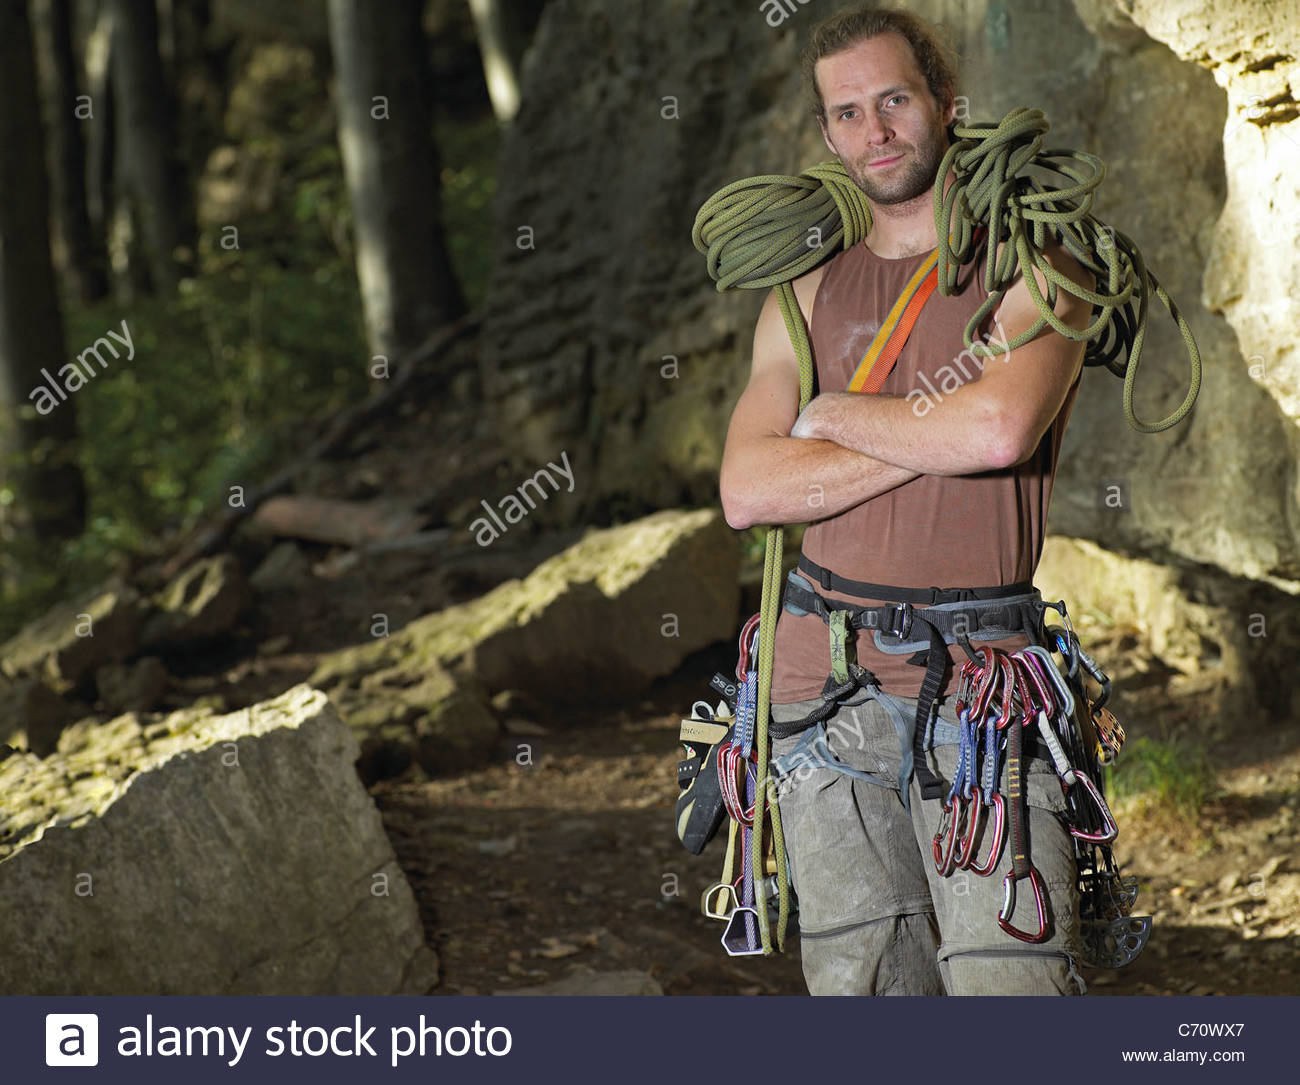 Rock climber with cords and belays - Stock Image